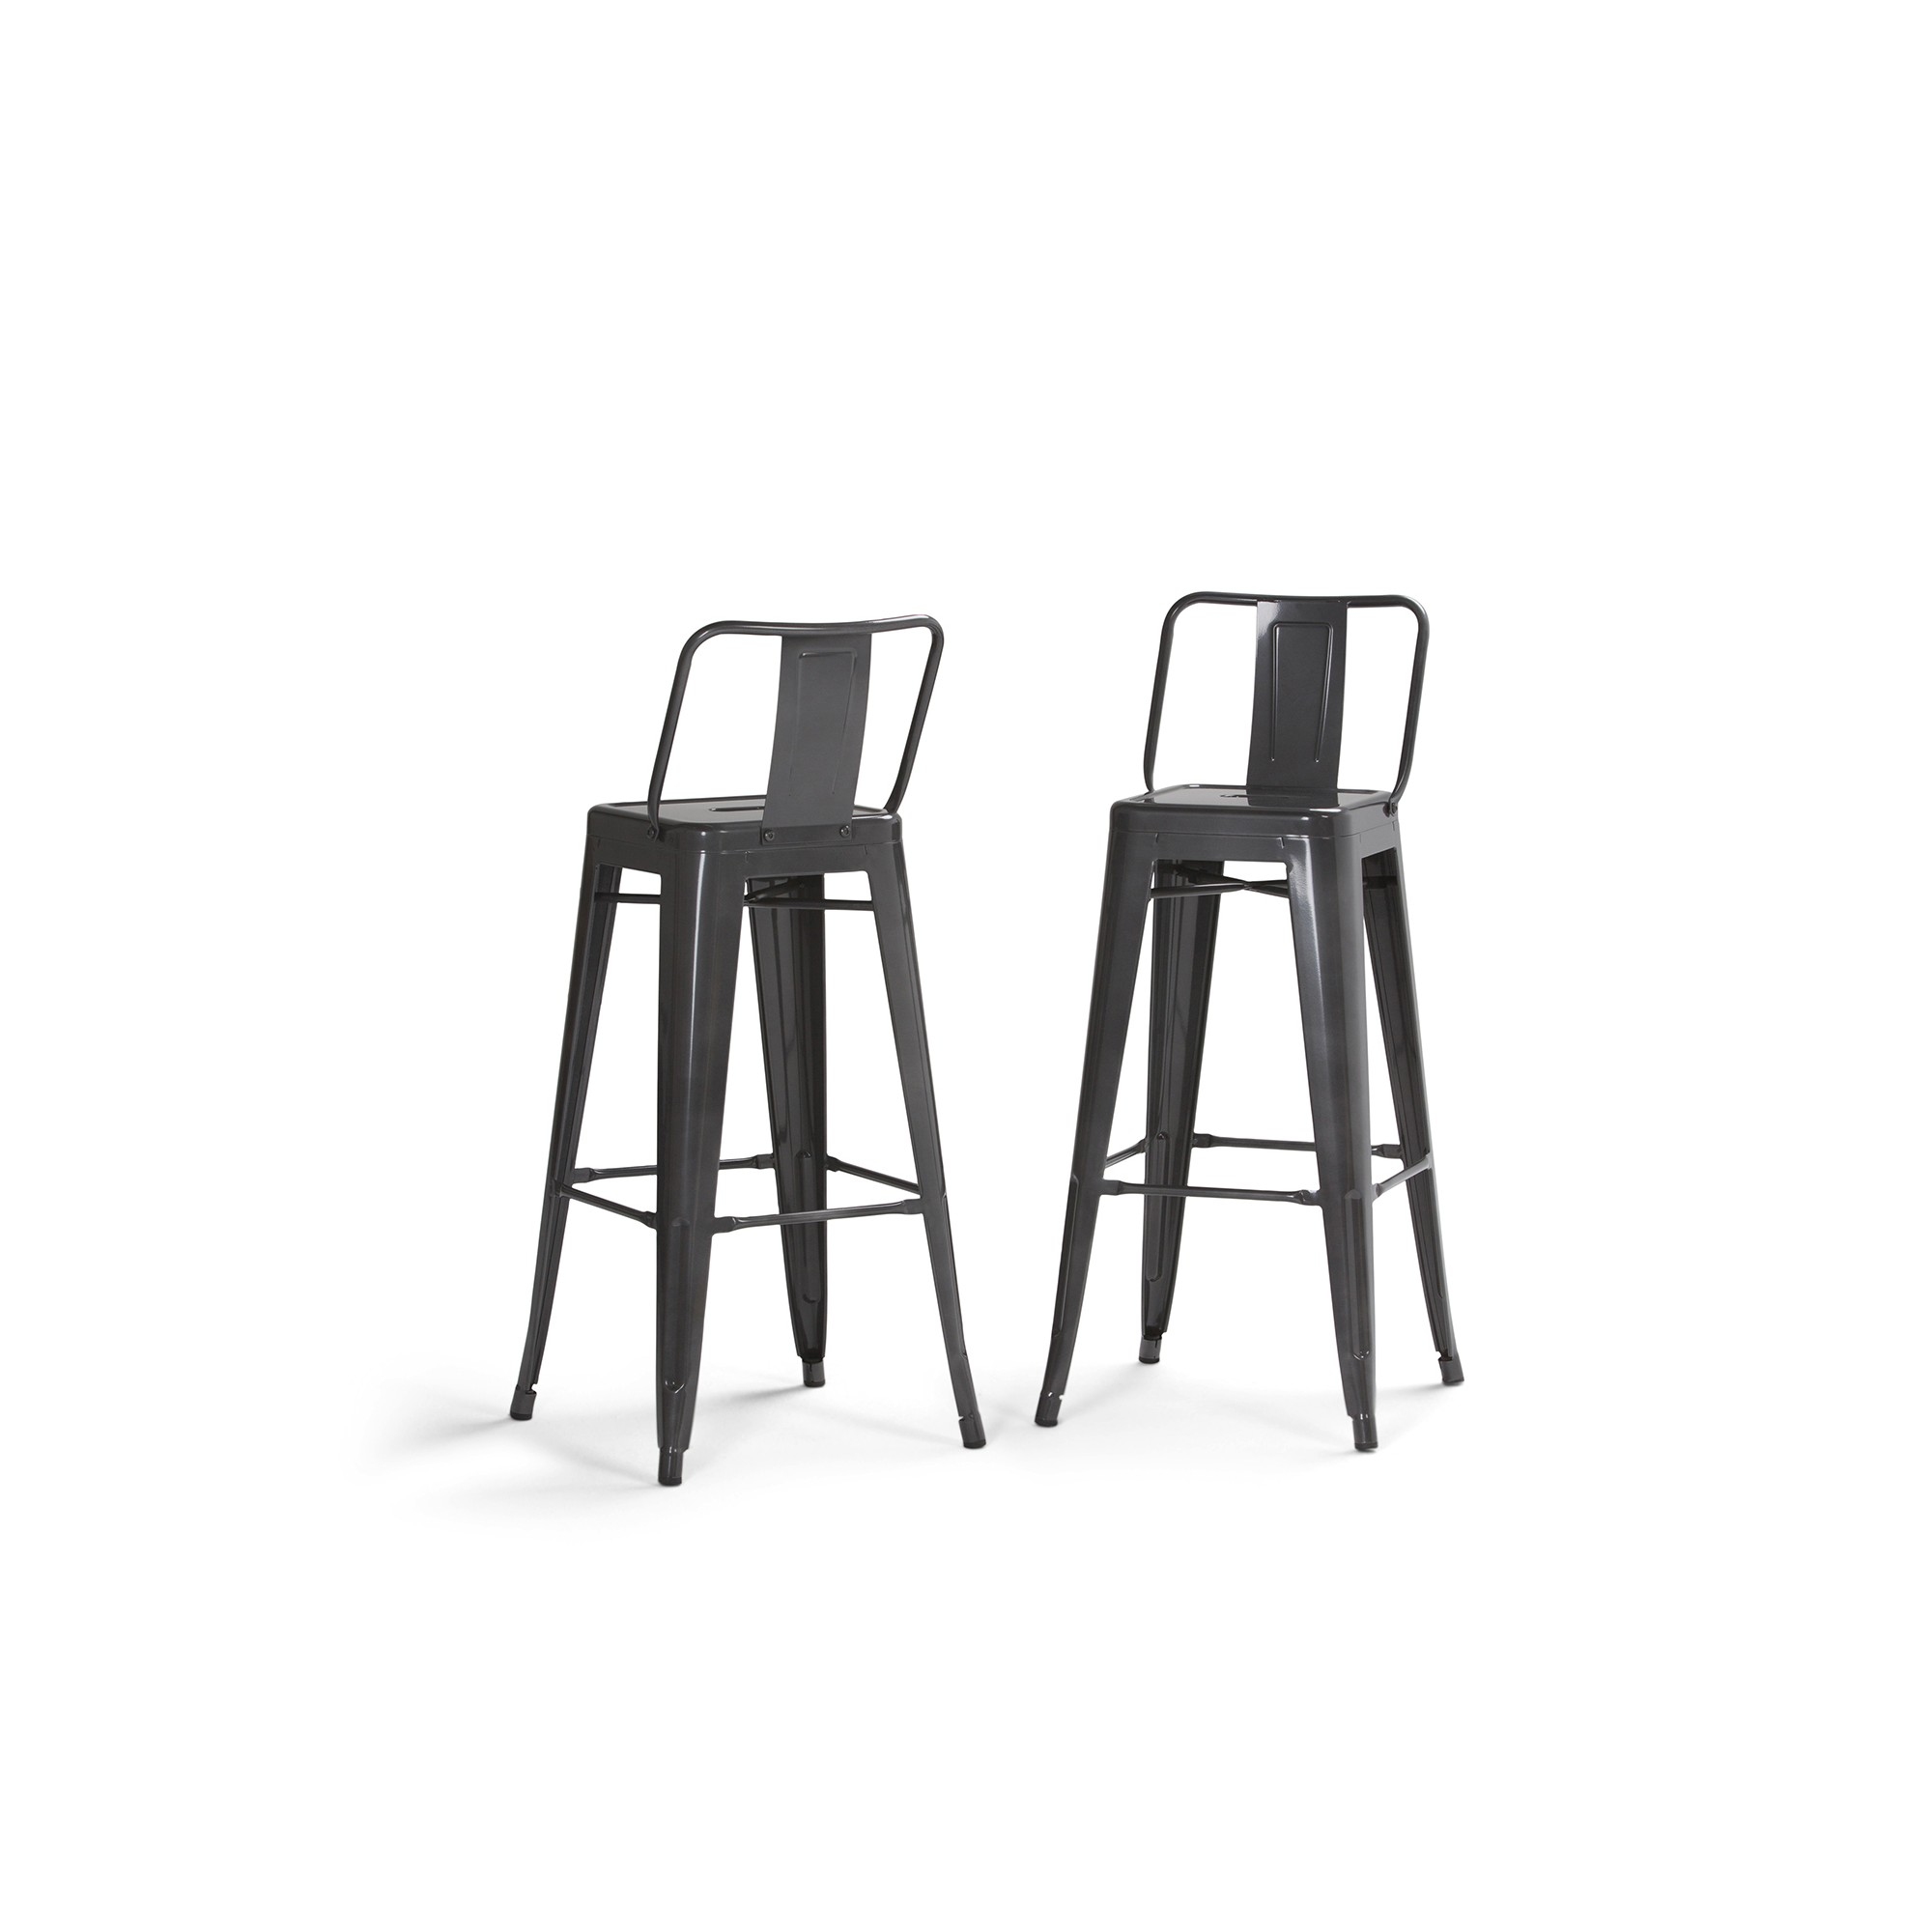 Awesome 30 Set Of 2 Josephine Metal Bar Stool Gray Wyndenhall Ocoug Best Dining Table And Chair Ideas Images Ocougorg